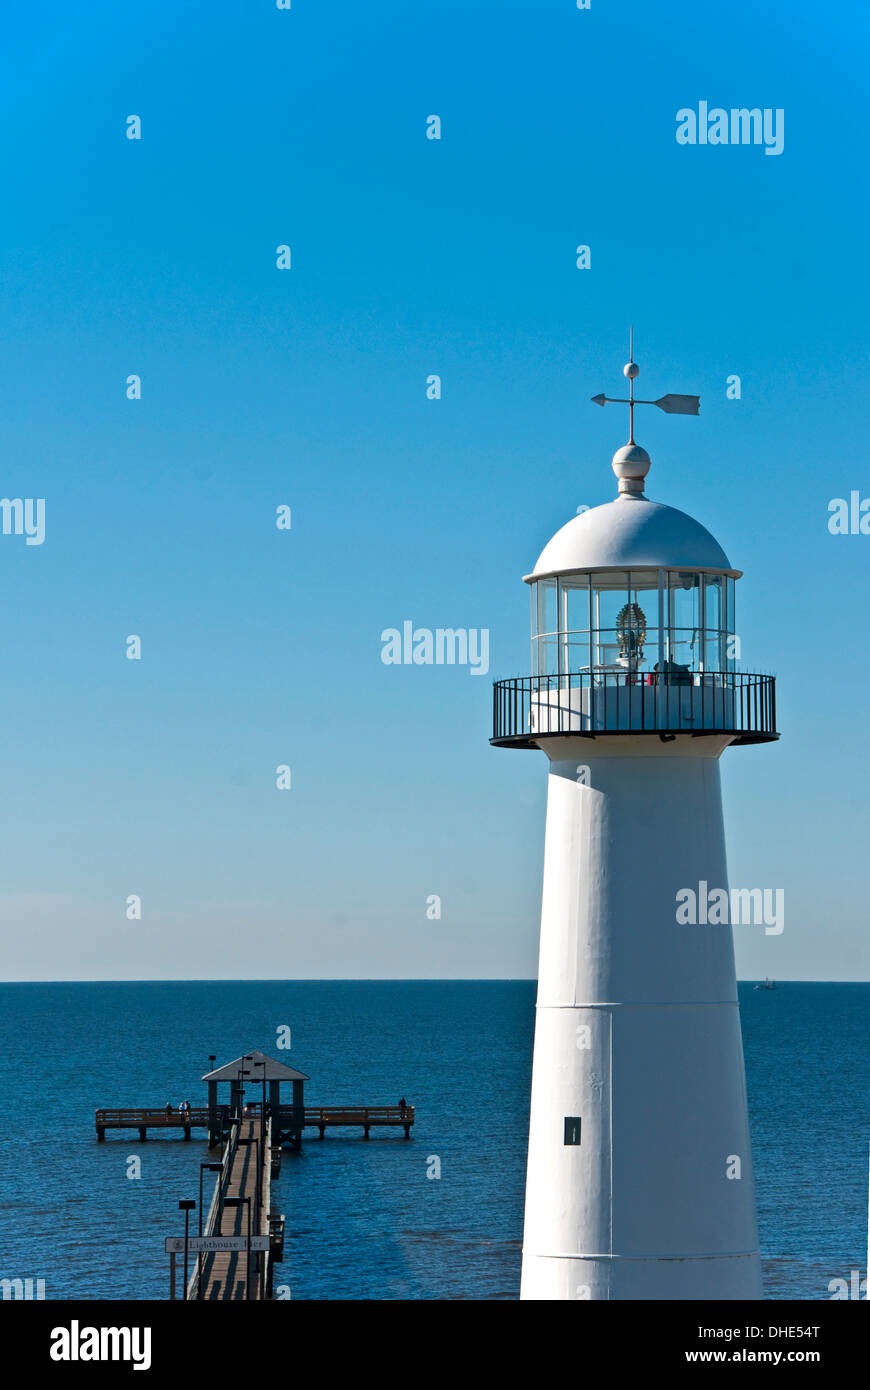 Mississippi Gulf Coast S Biloxi Lighthouse And Lighthouse Pier On